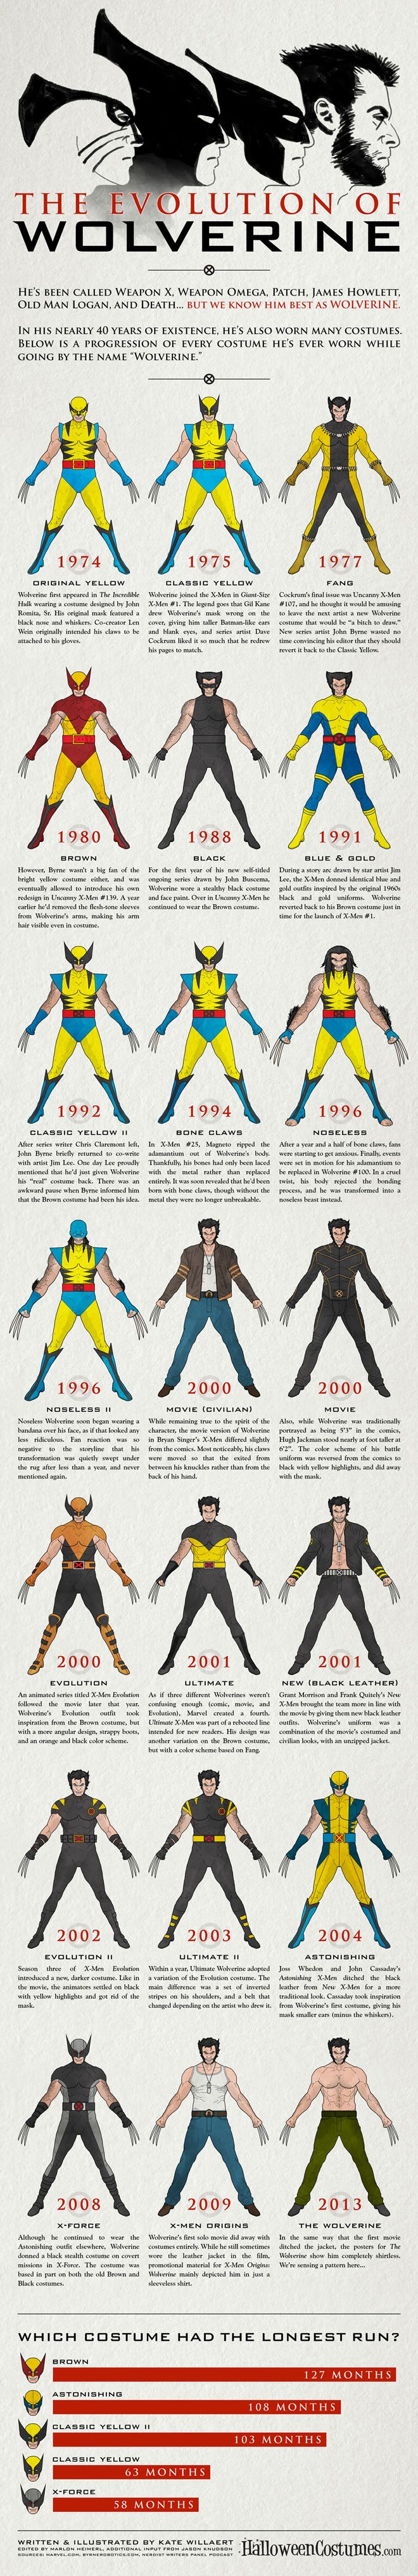 The Evolution of Wolverine's Costume Infographic